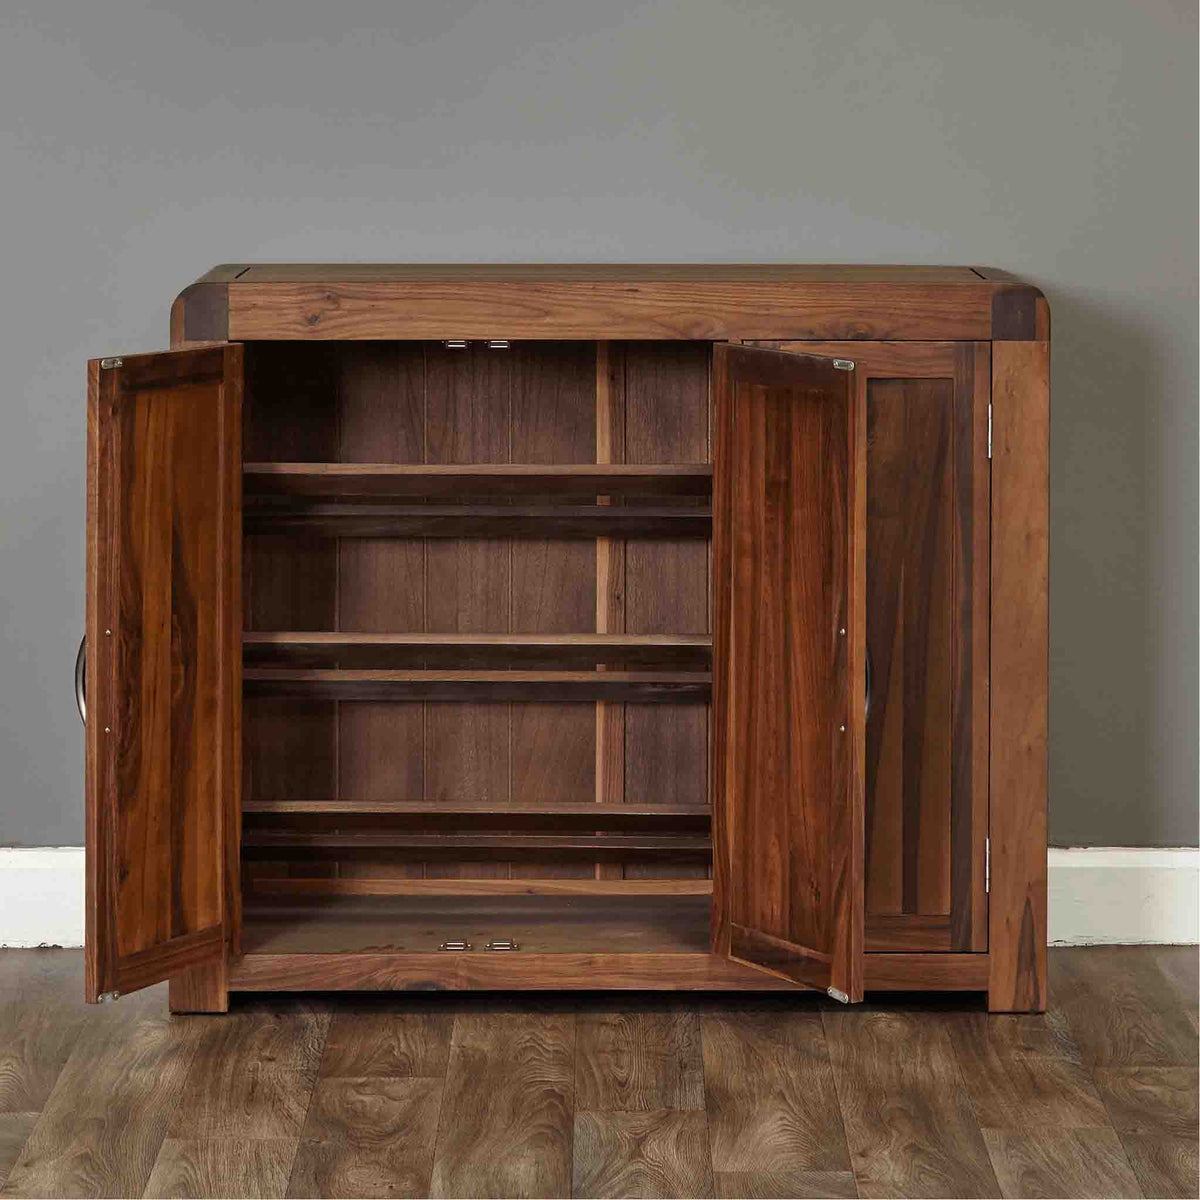 Internal view of The Salem Walnut Extra Large Wooden Shoe Storage Cupboard from Roseland Furniture